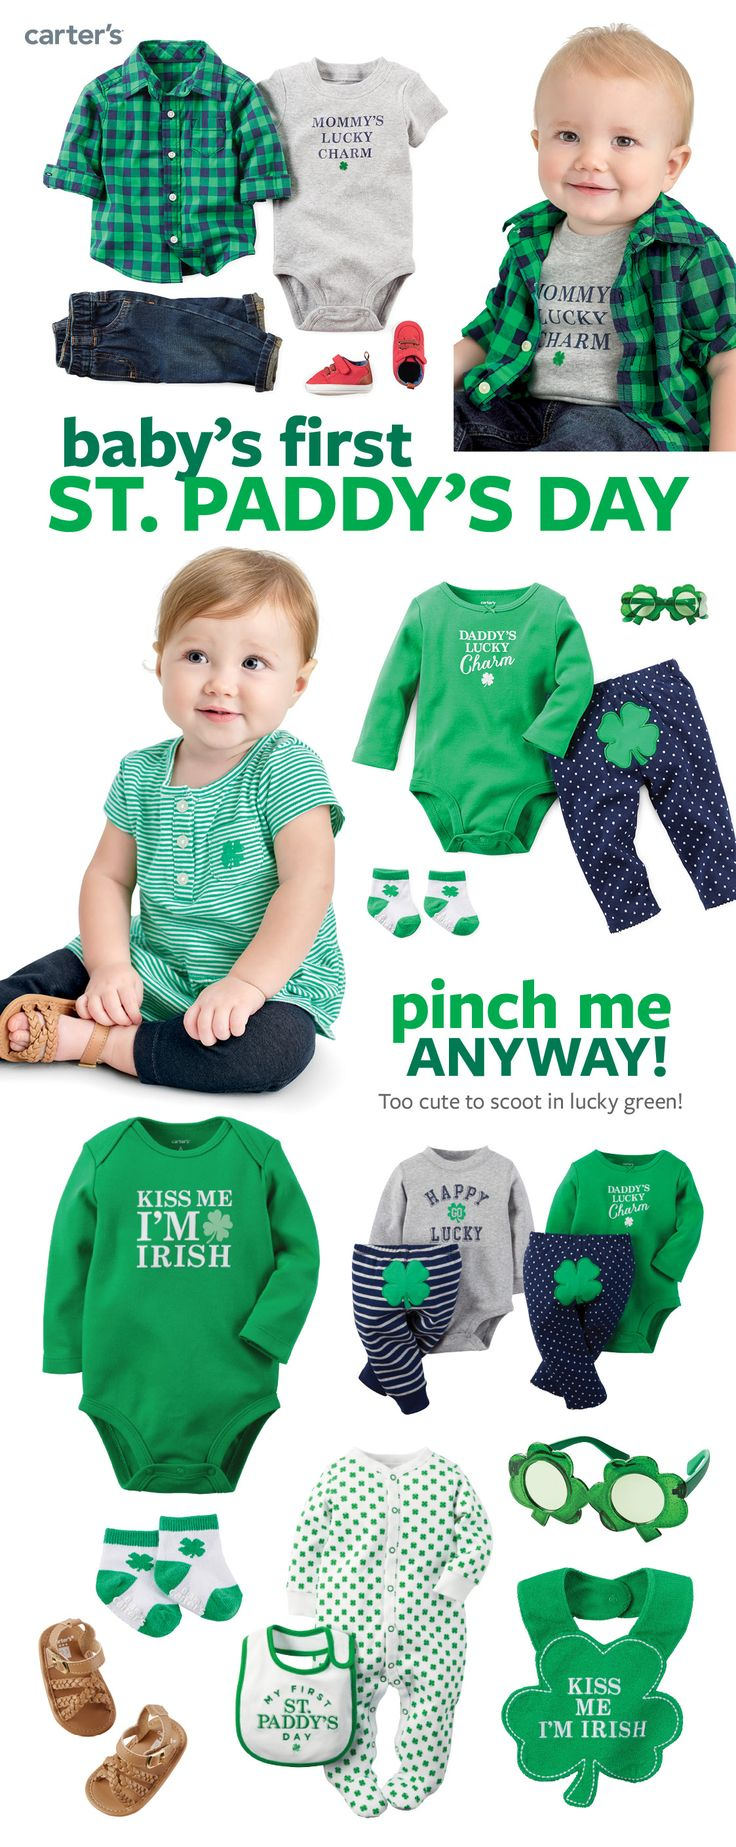 Celebrate baby's first St. Patrick's day with easy outfit sets, sleep & play, bibs, socks and more first little looks for your good luck charm!